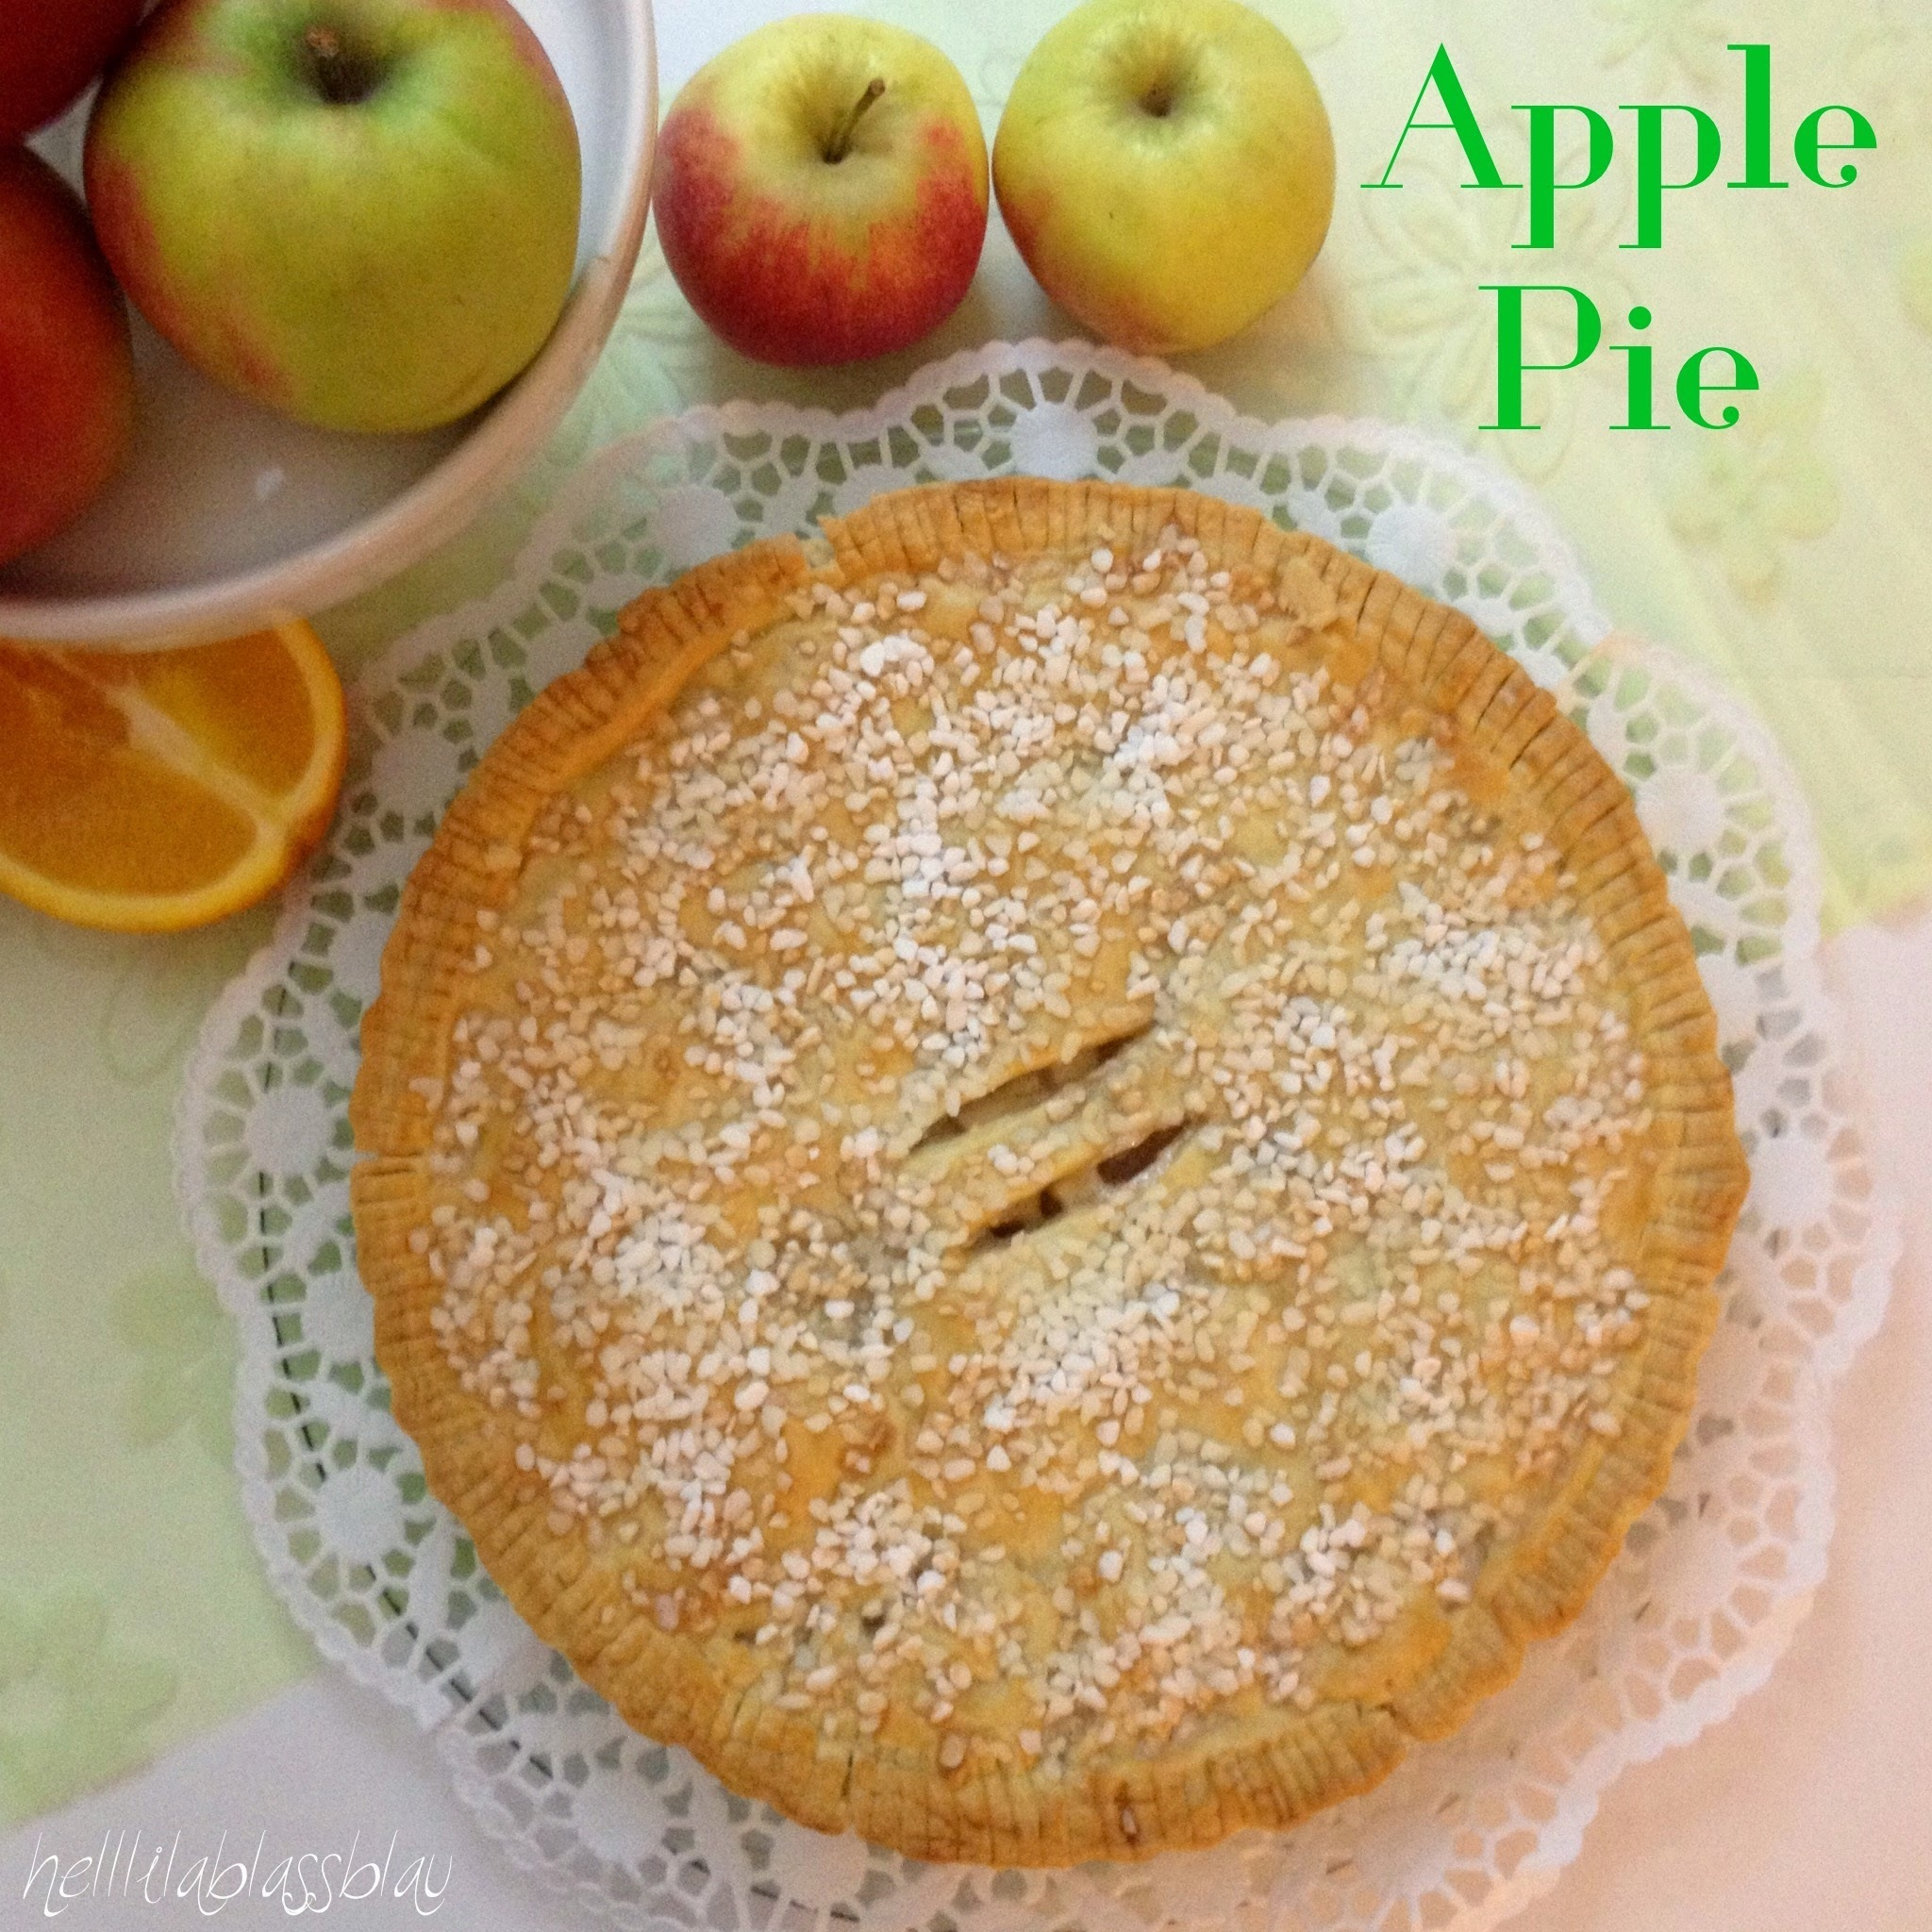 Ich backs mir - Apple Pie (Bücherregal, Sponsored Post)